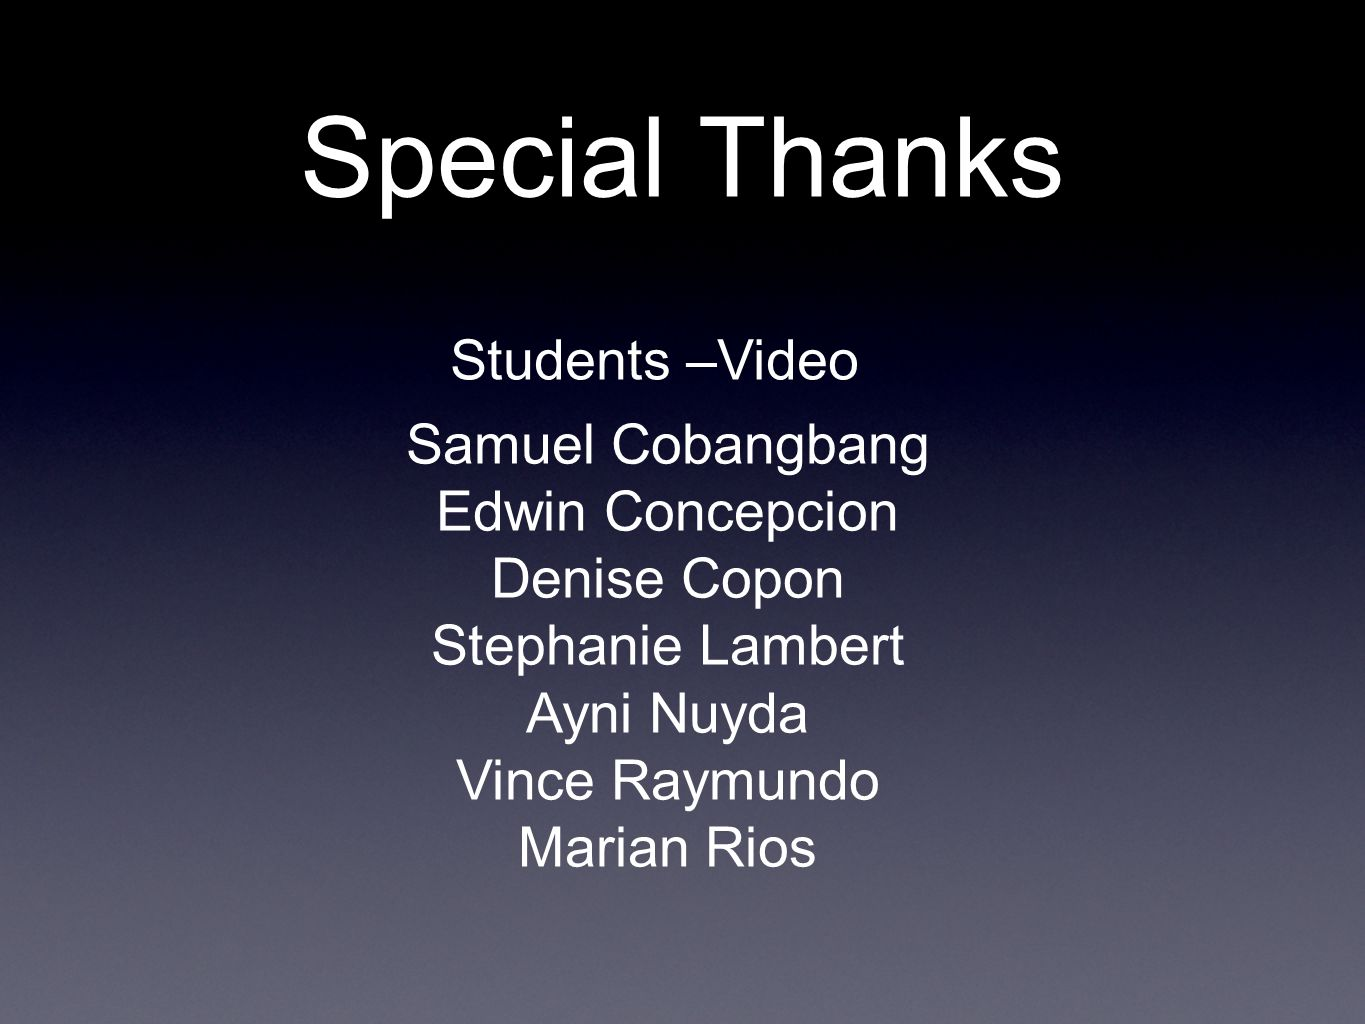 Special Thanks Students –Video Samuel Cobangbang Edwin Concepcion Denise Copon Stephanie Lambert Ayni Nuyda Vince Raymundo Marian Rios